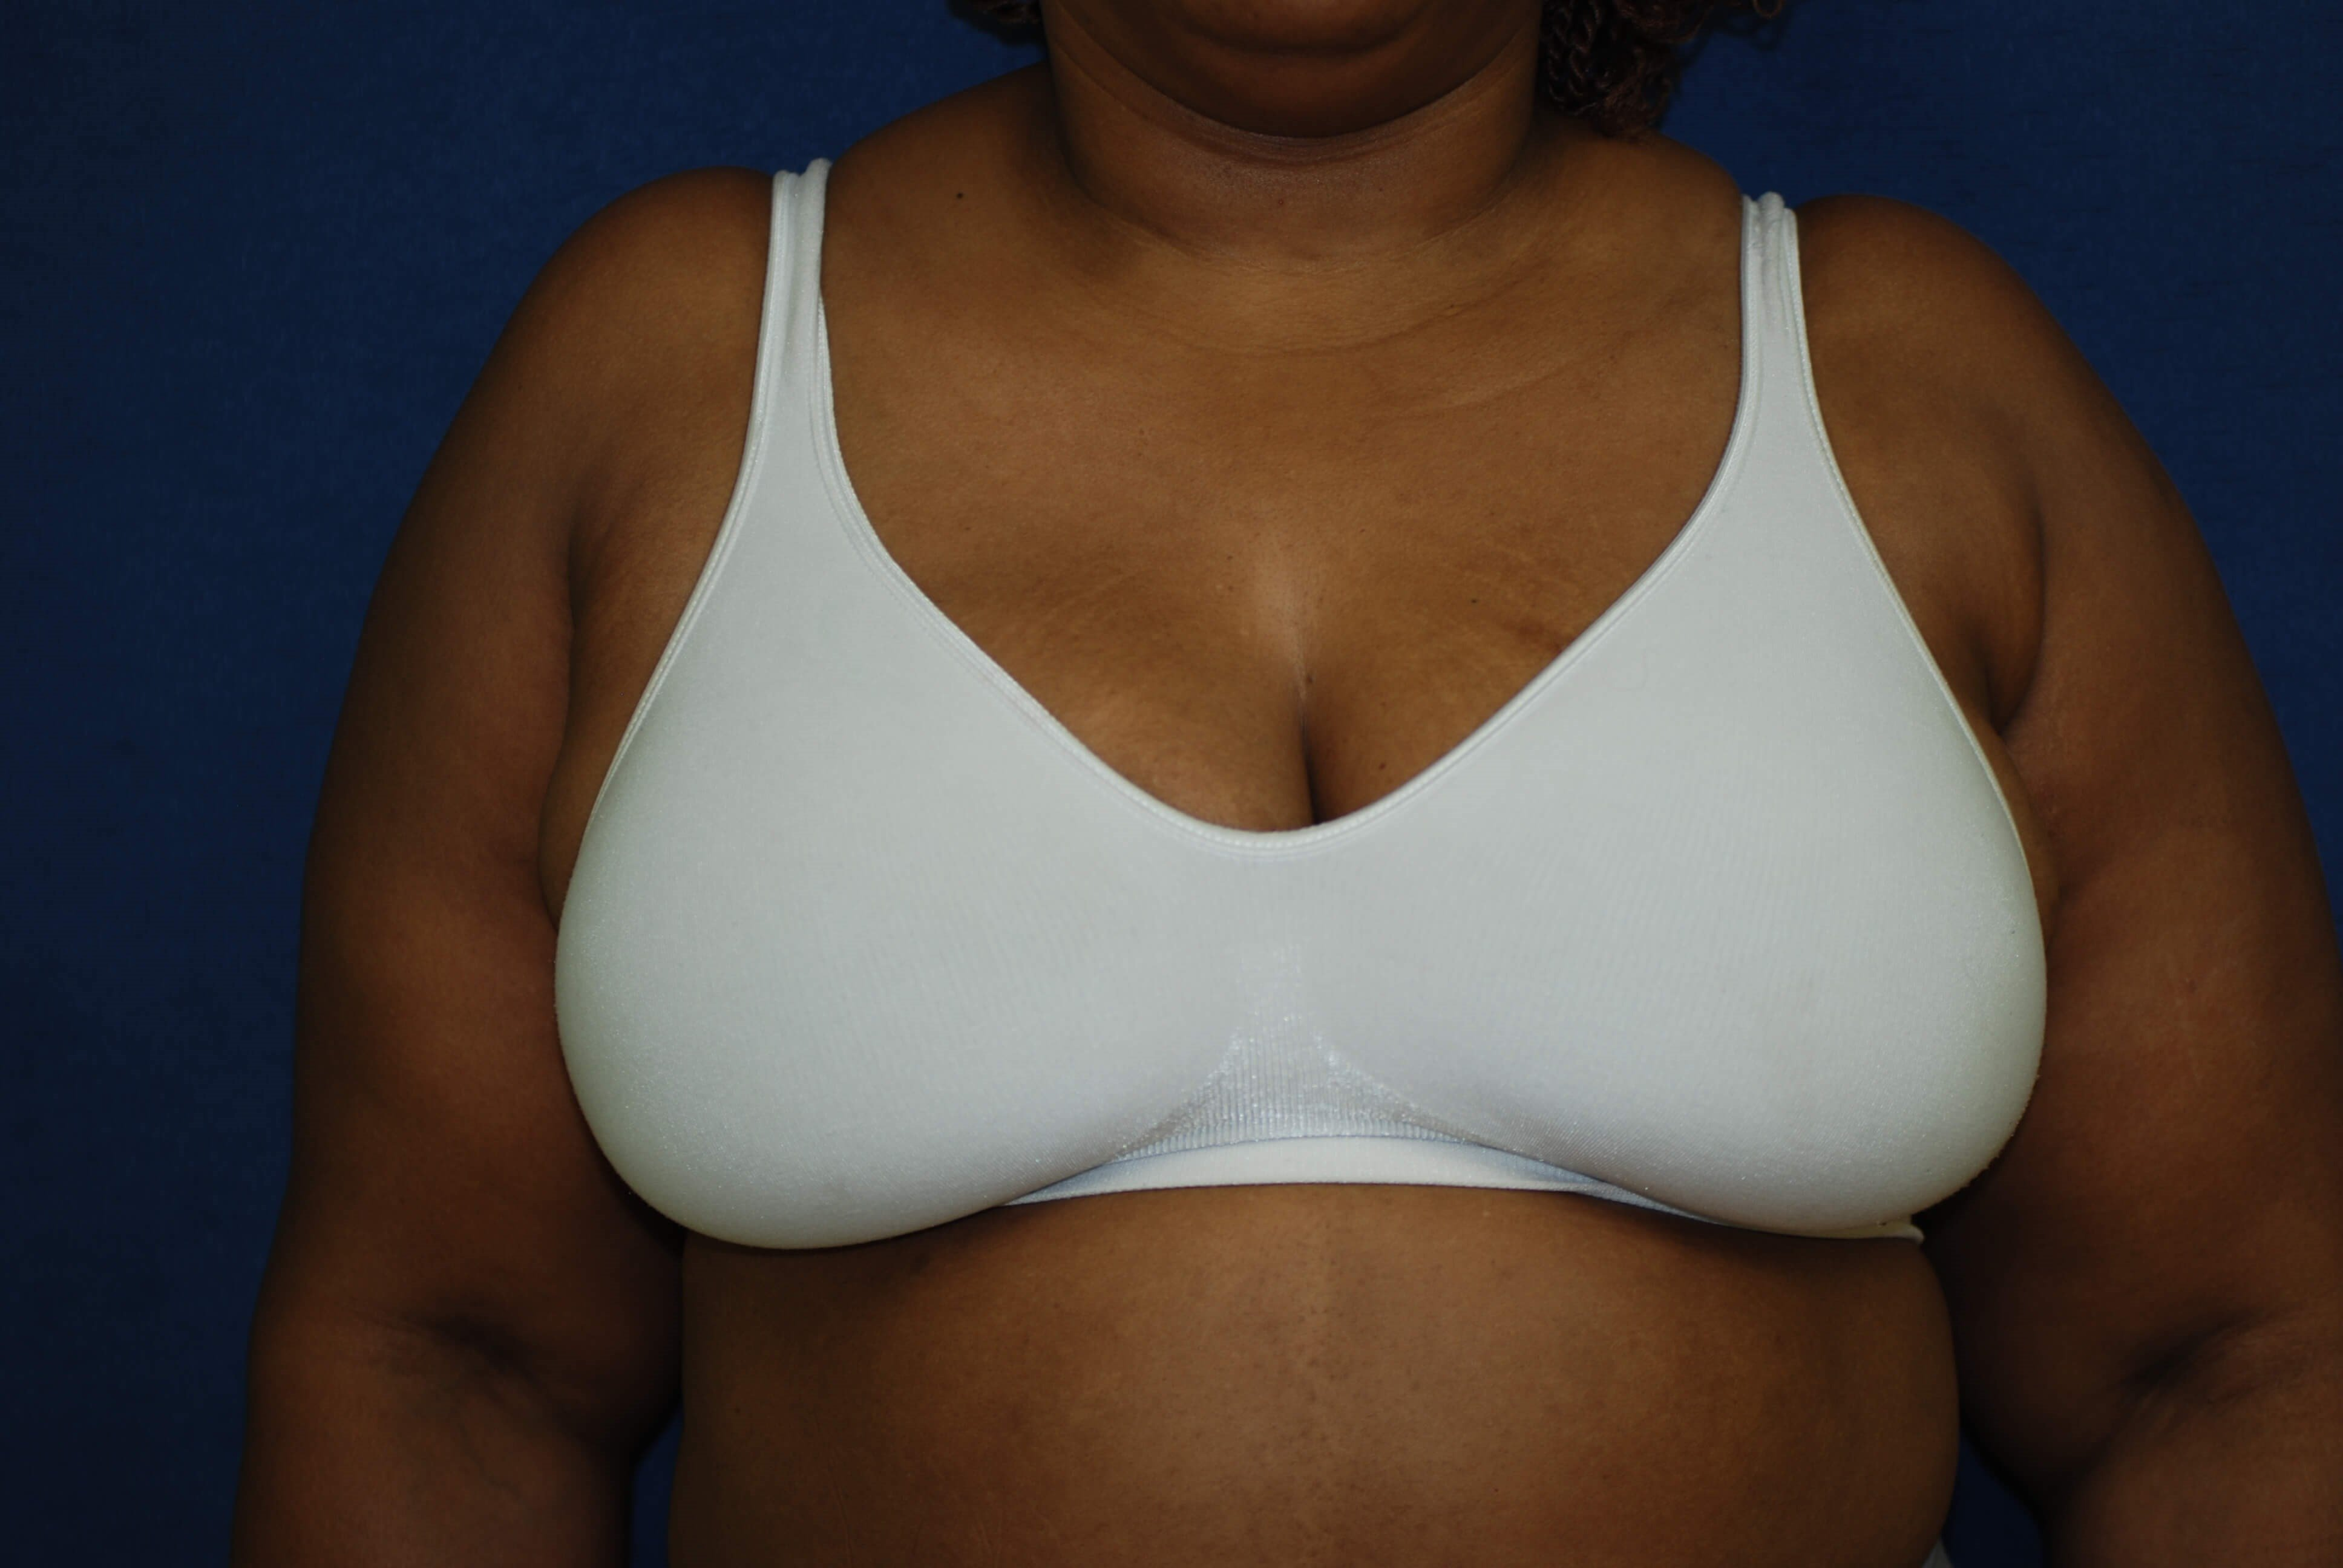 Completed In-Bra After in-bra